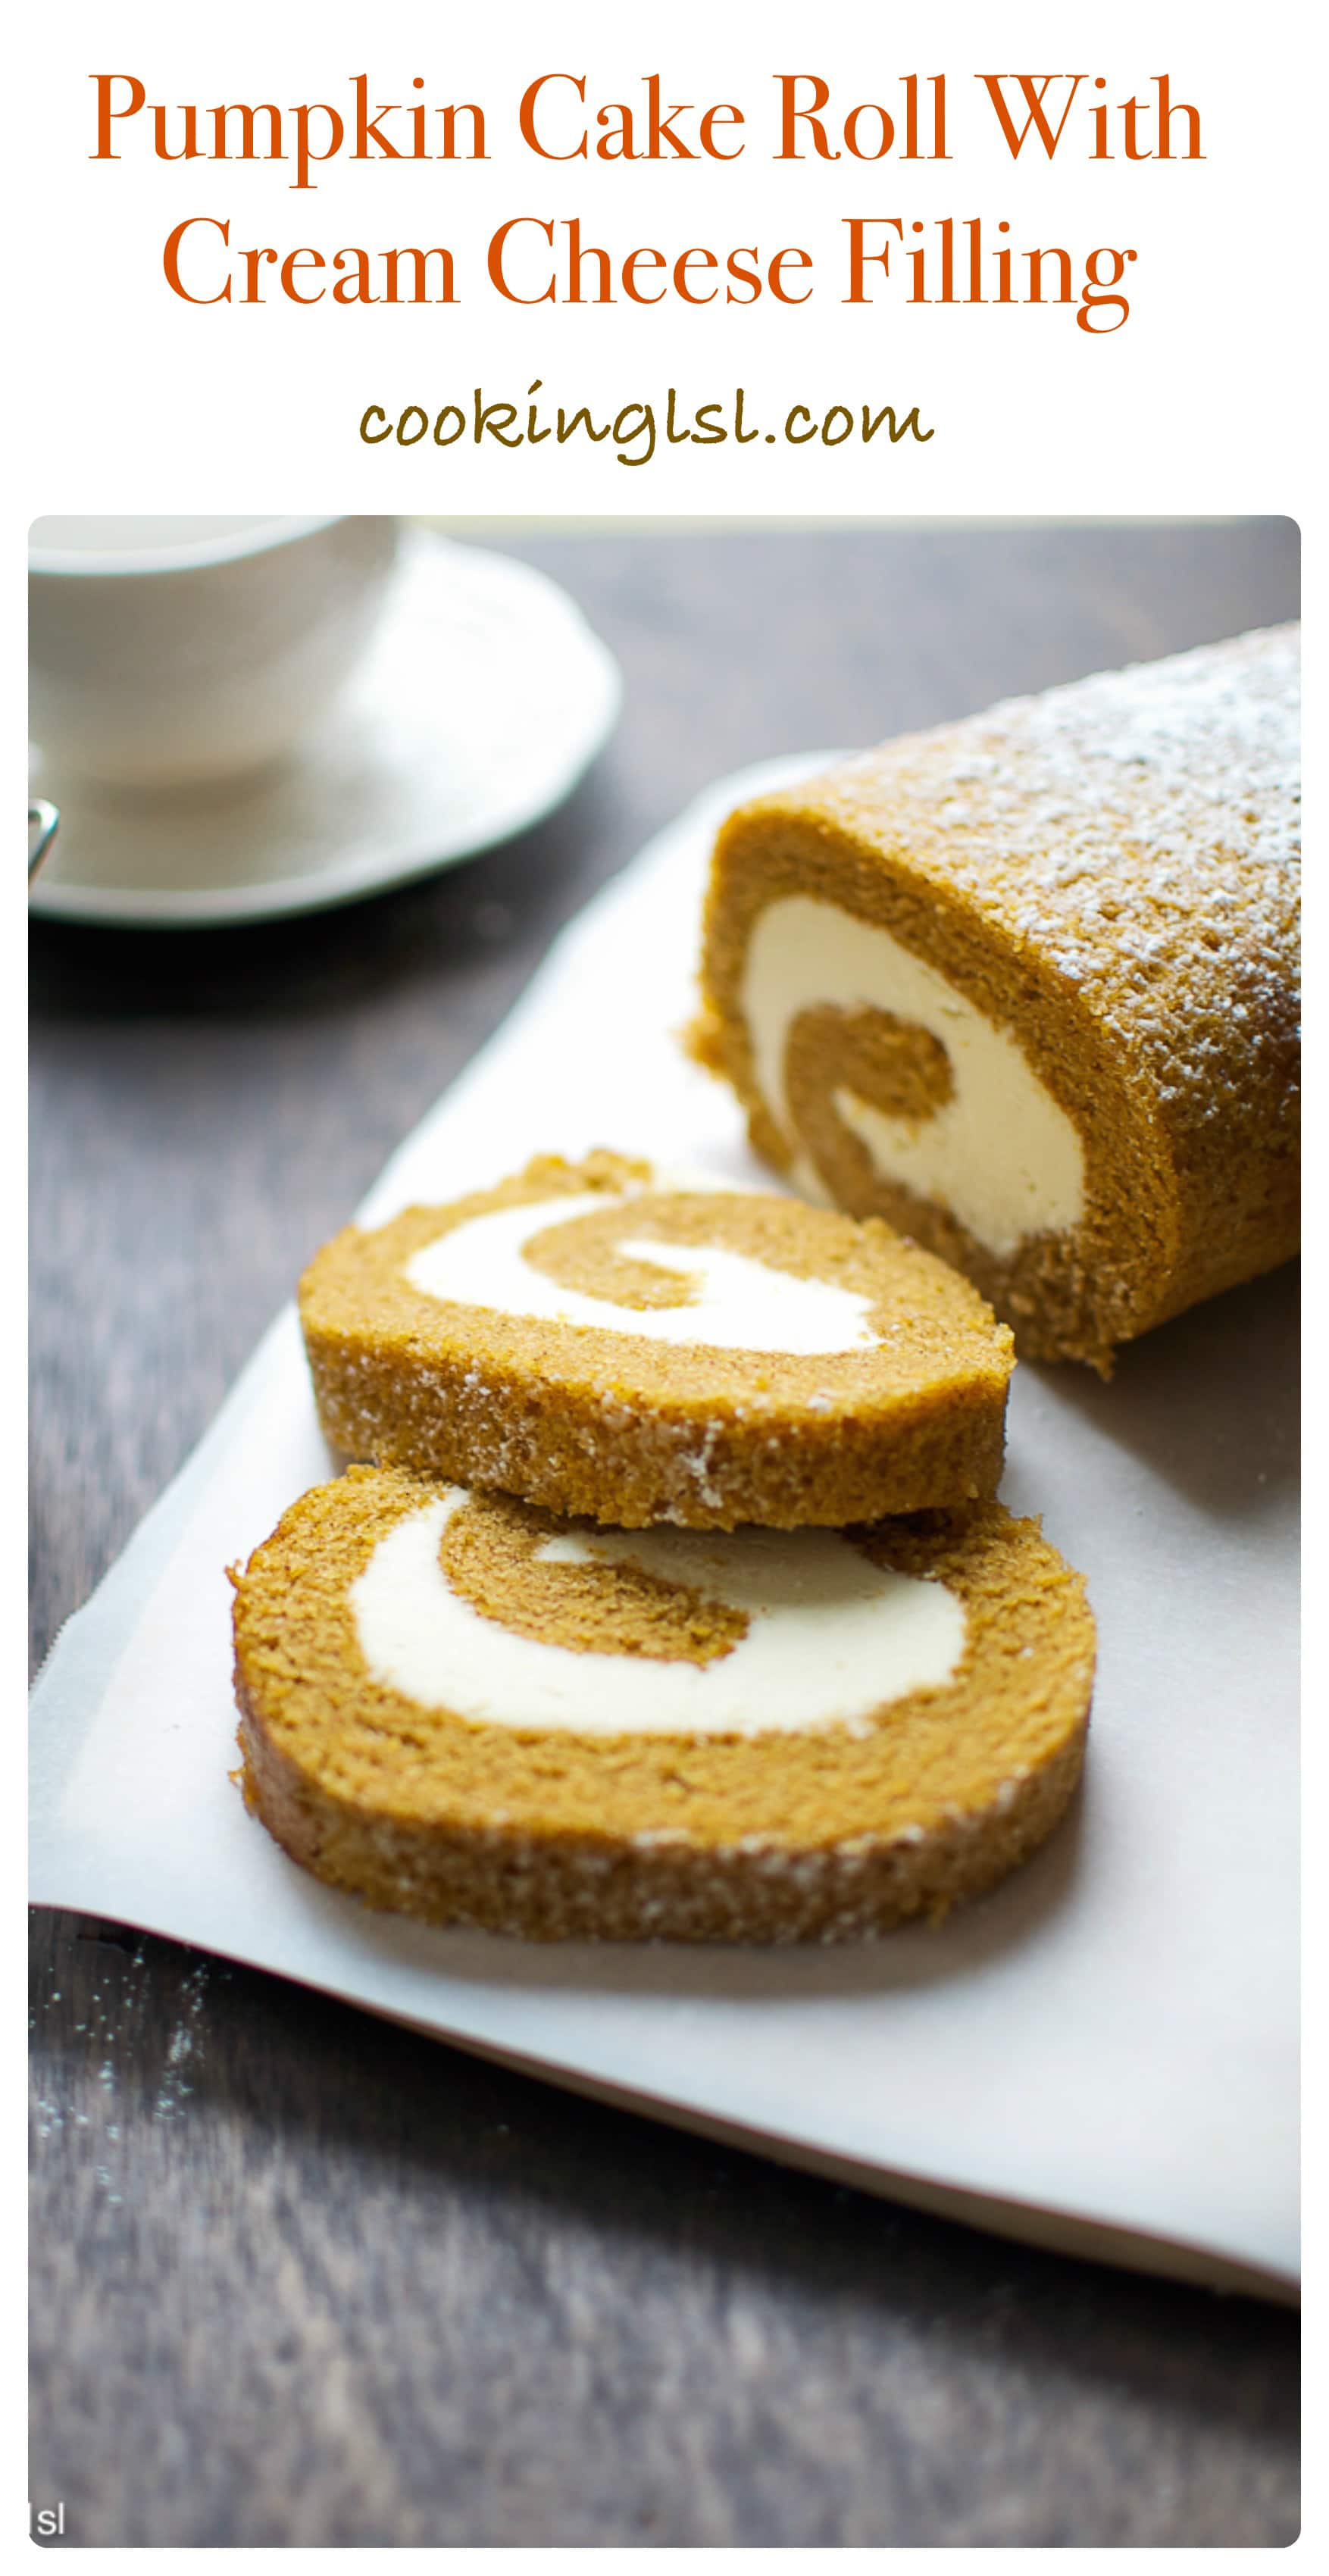 pumpkin-cake-roll-cream-cheese-filling-frosting-Thanksgiving-Halloween